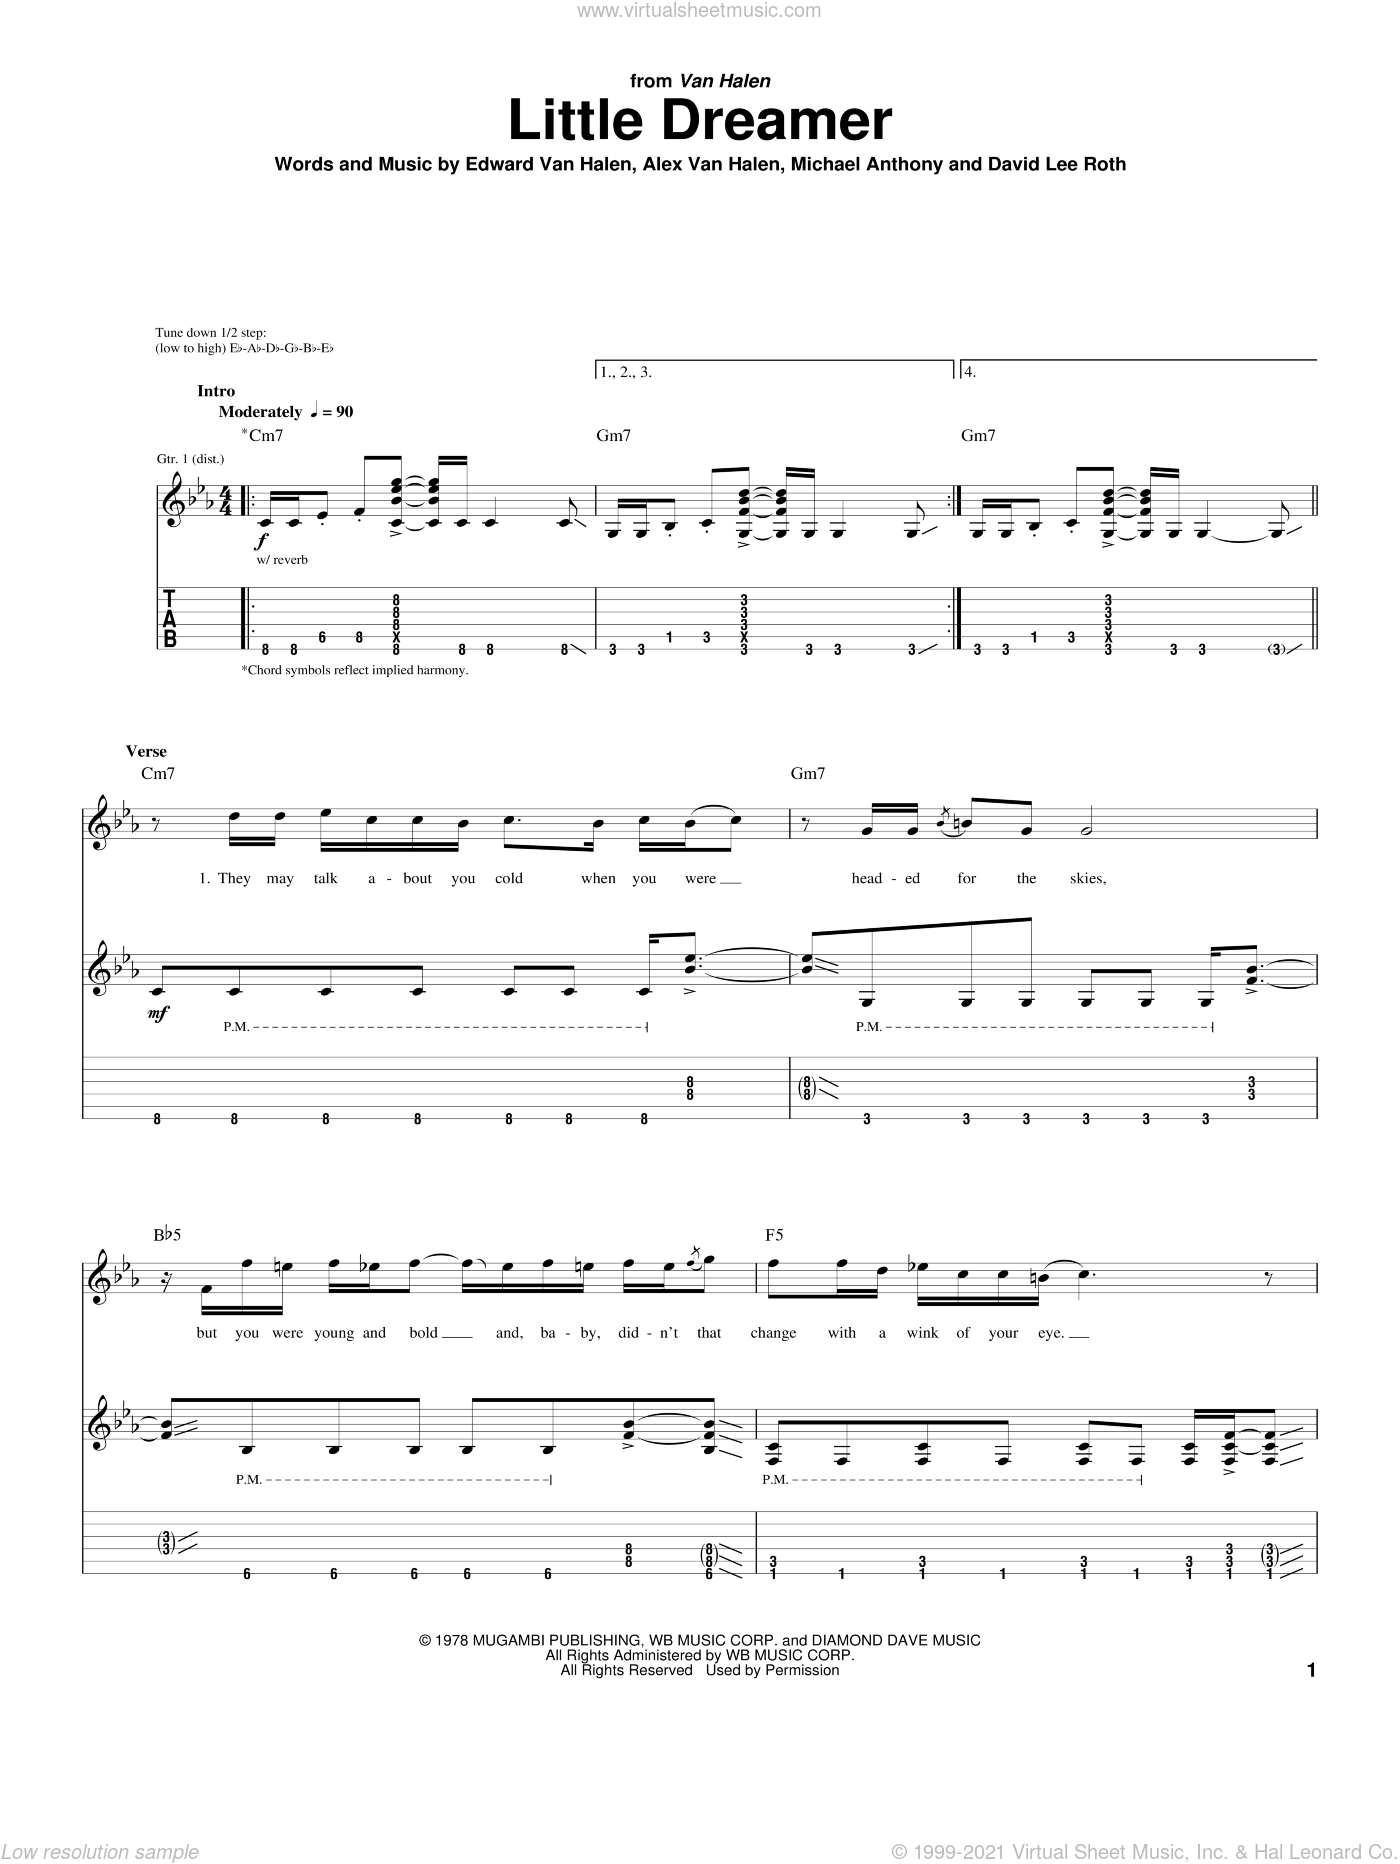 Little Dreamer sheet music for guitar (tablature) by Edward Van Halen, Alex Van Halen, David Lee Roth and Michael Anthony, intermediate skill level